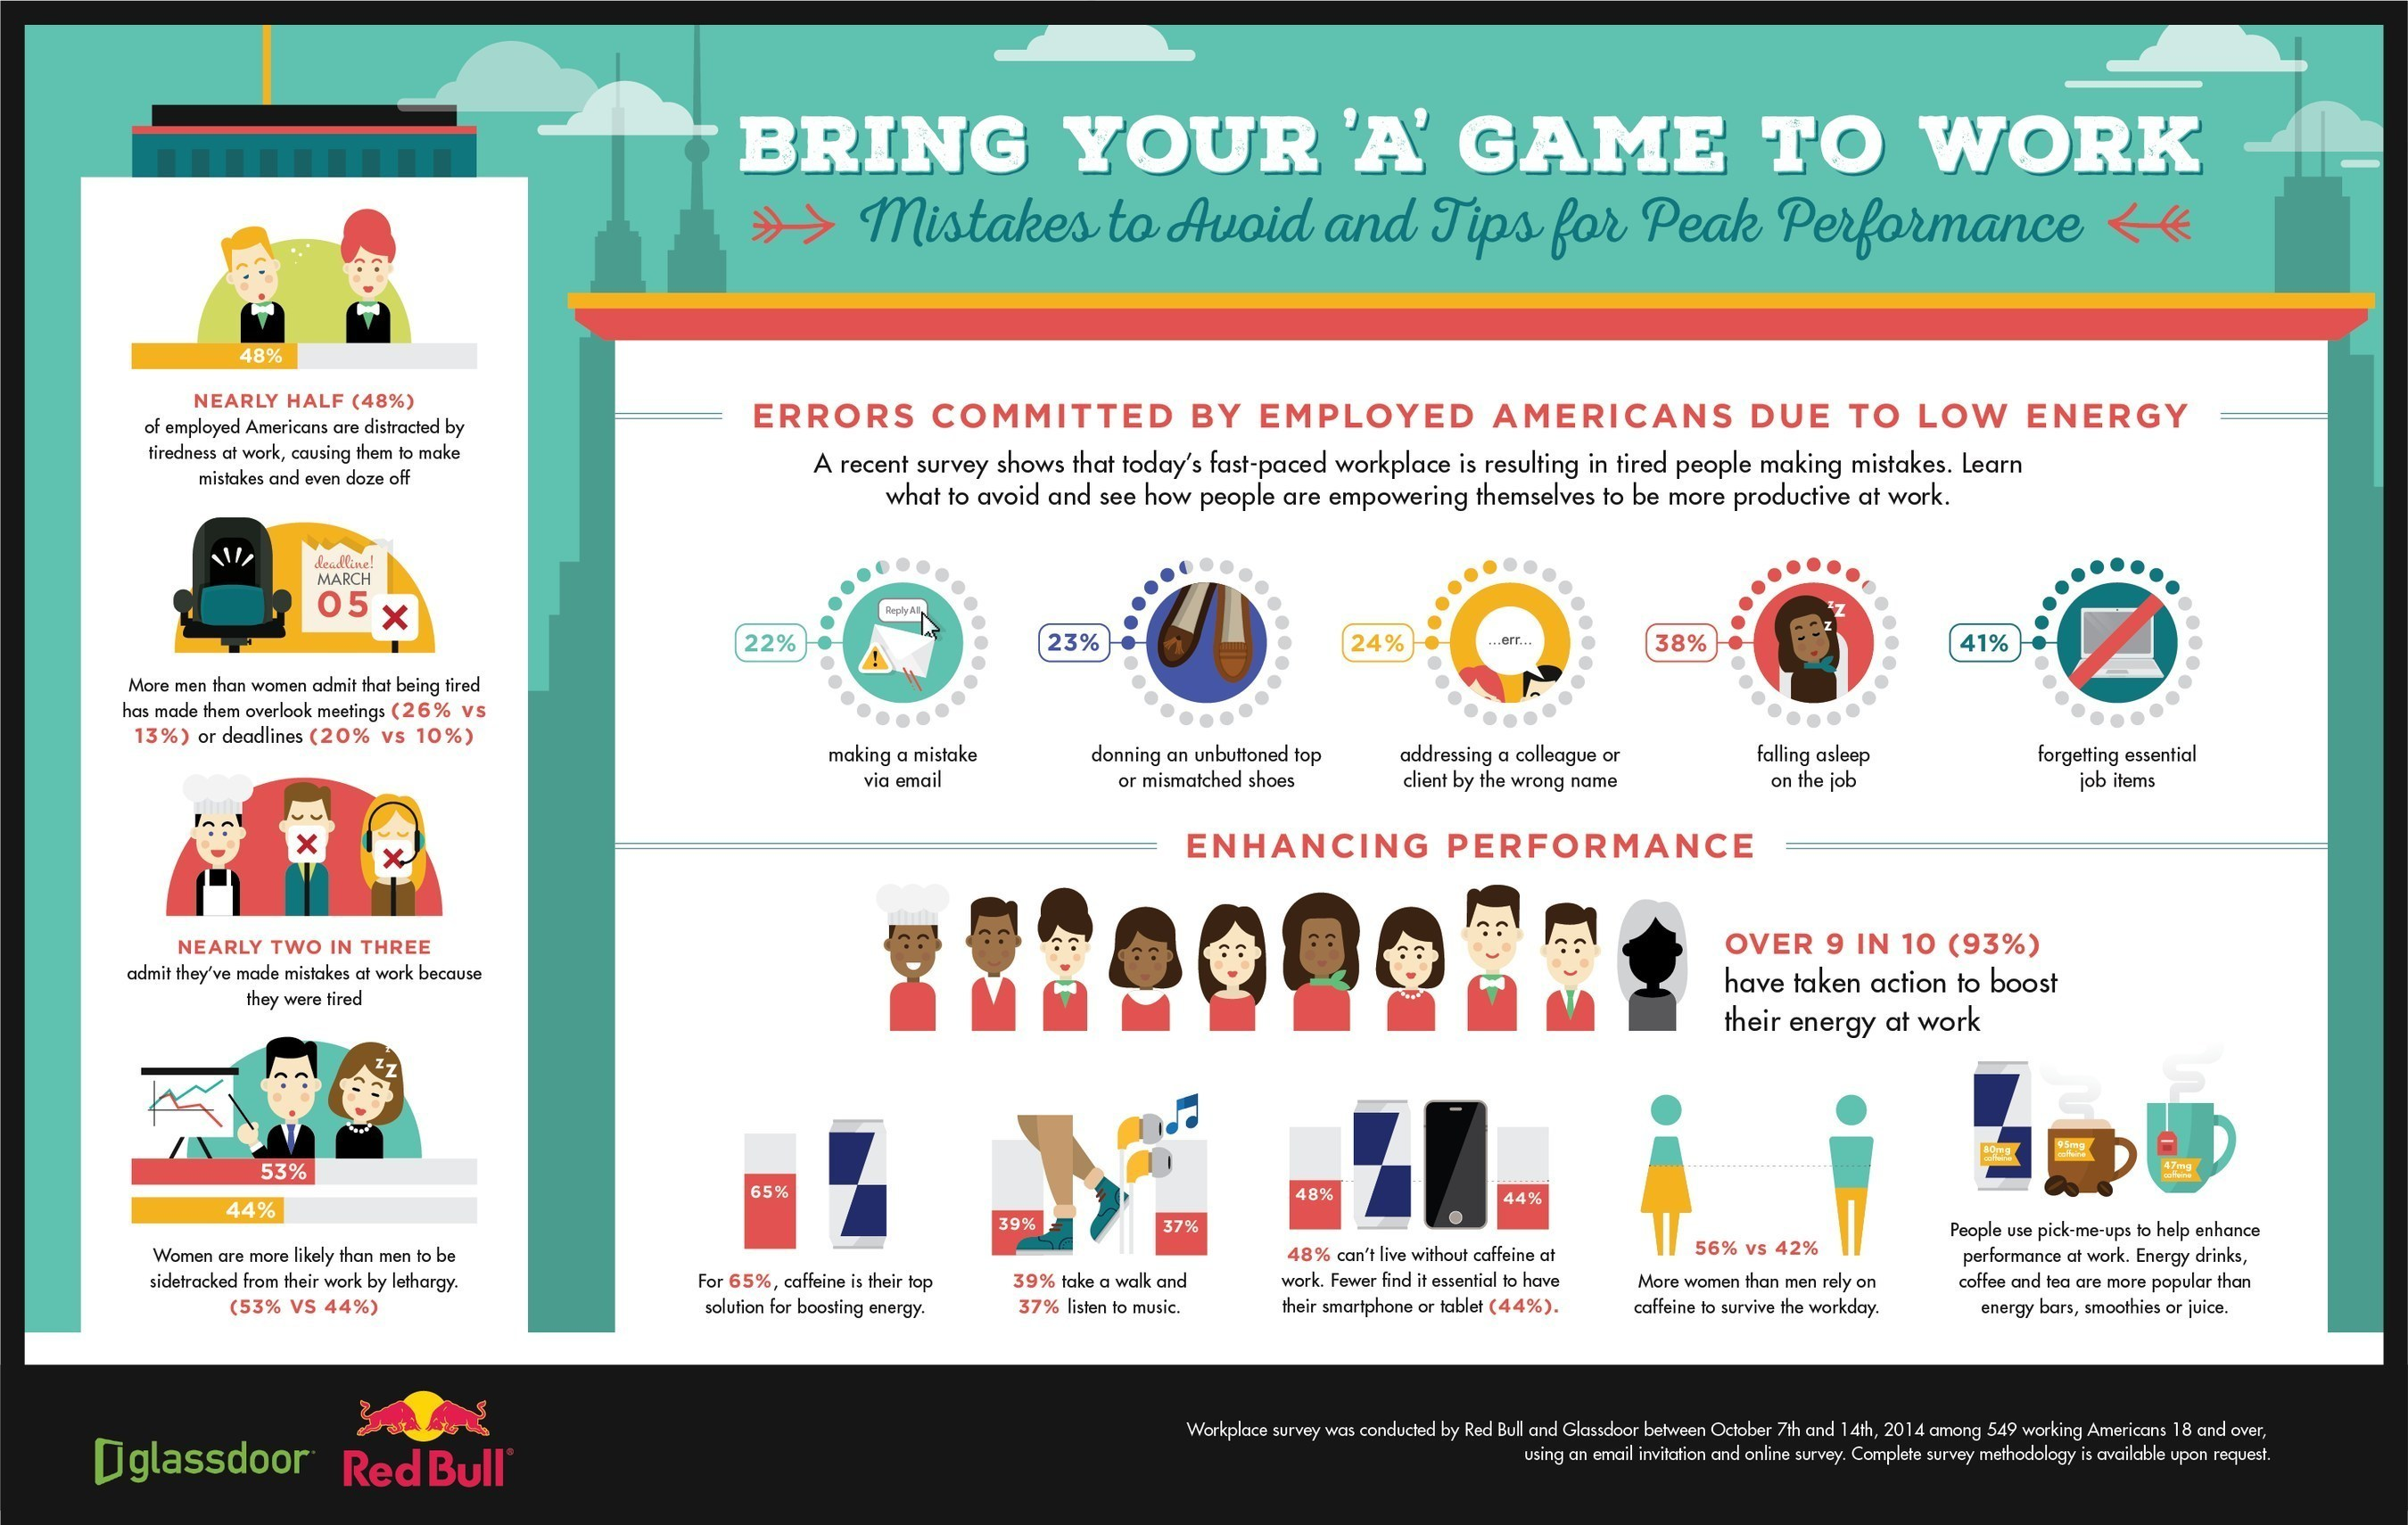 As employees embark on a new year at work, this infographic outlines common workplace mistakes to avoid as well as tips for peak performance. According to a new workplace survey commissioned by Red Bull and Glassdoor, nearly half of employed Americans are distracted by fatigue at work, causing them to make mistakes and even doze off. Tiredness is a bigger distraction to workers than social media and personal communications. U.S. workers are so desperate to combat tiredness, 93 percent of respondents said they have taken action to boost their energy at work, with caffeine as a top workplace necessity.